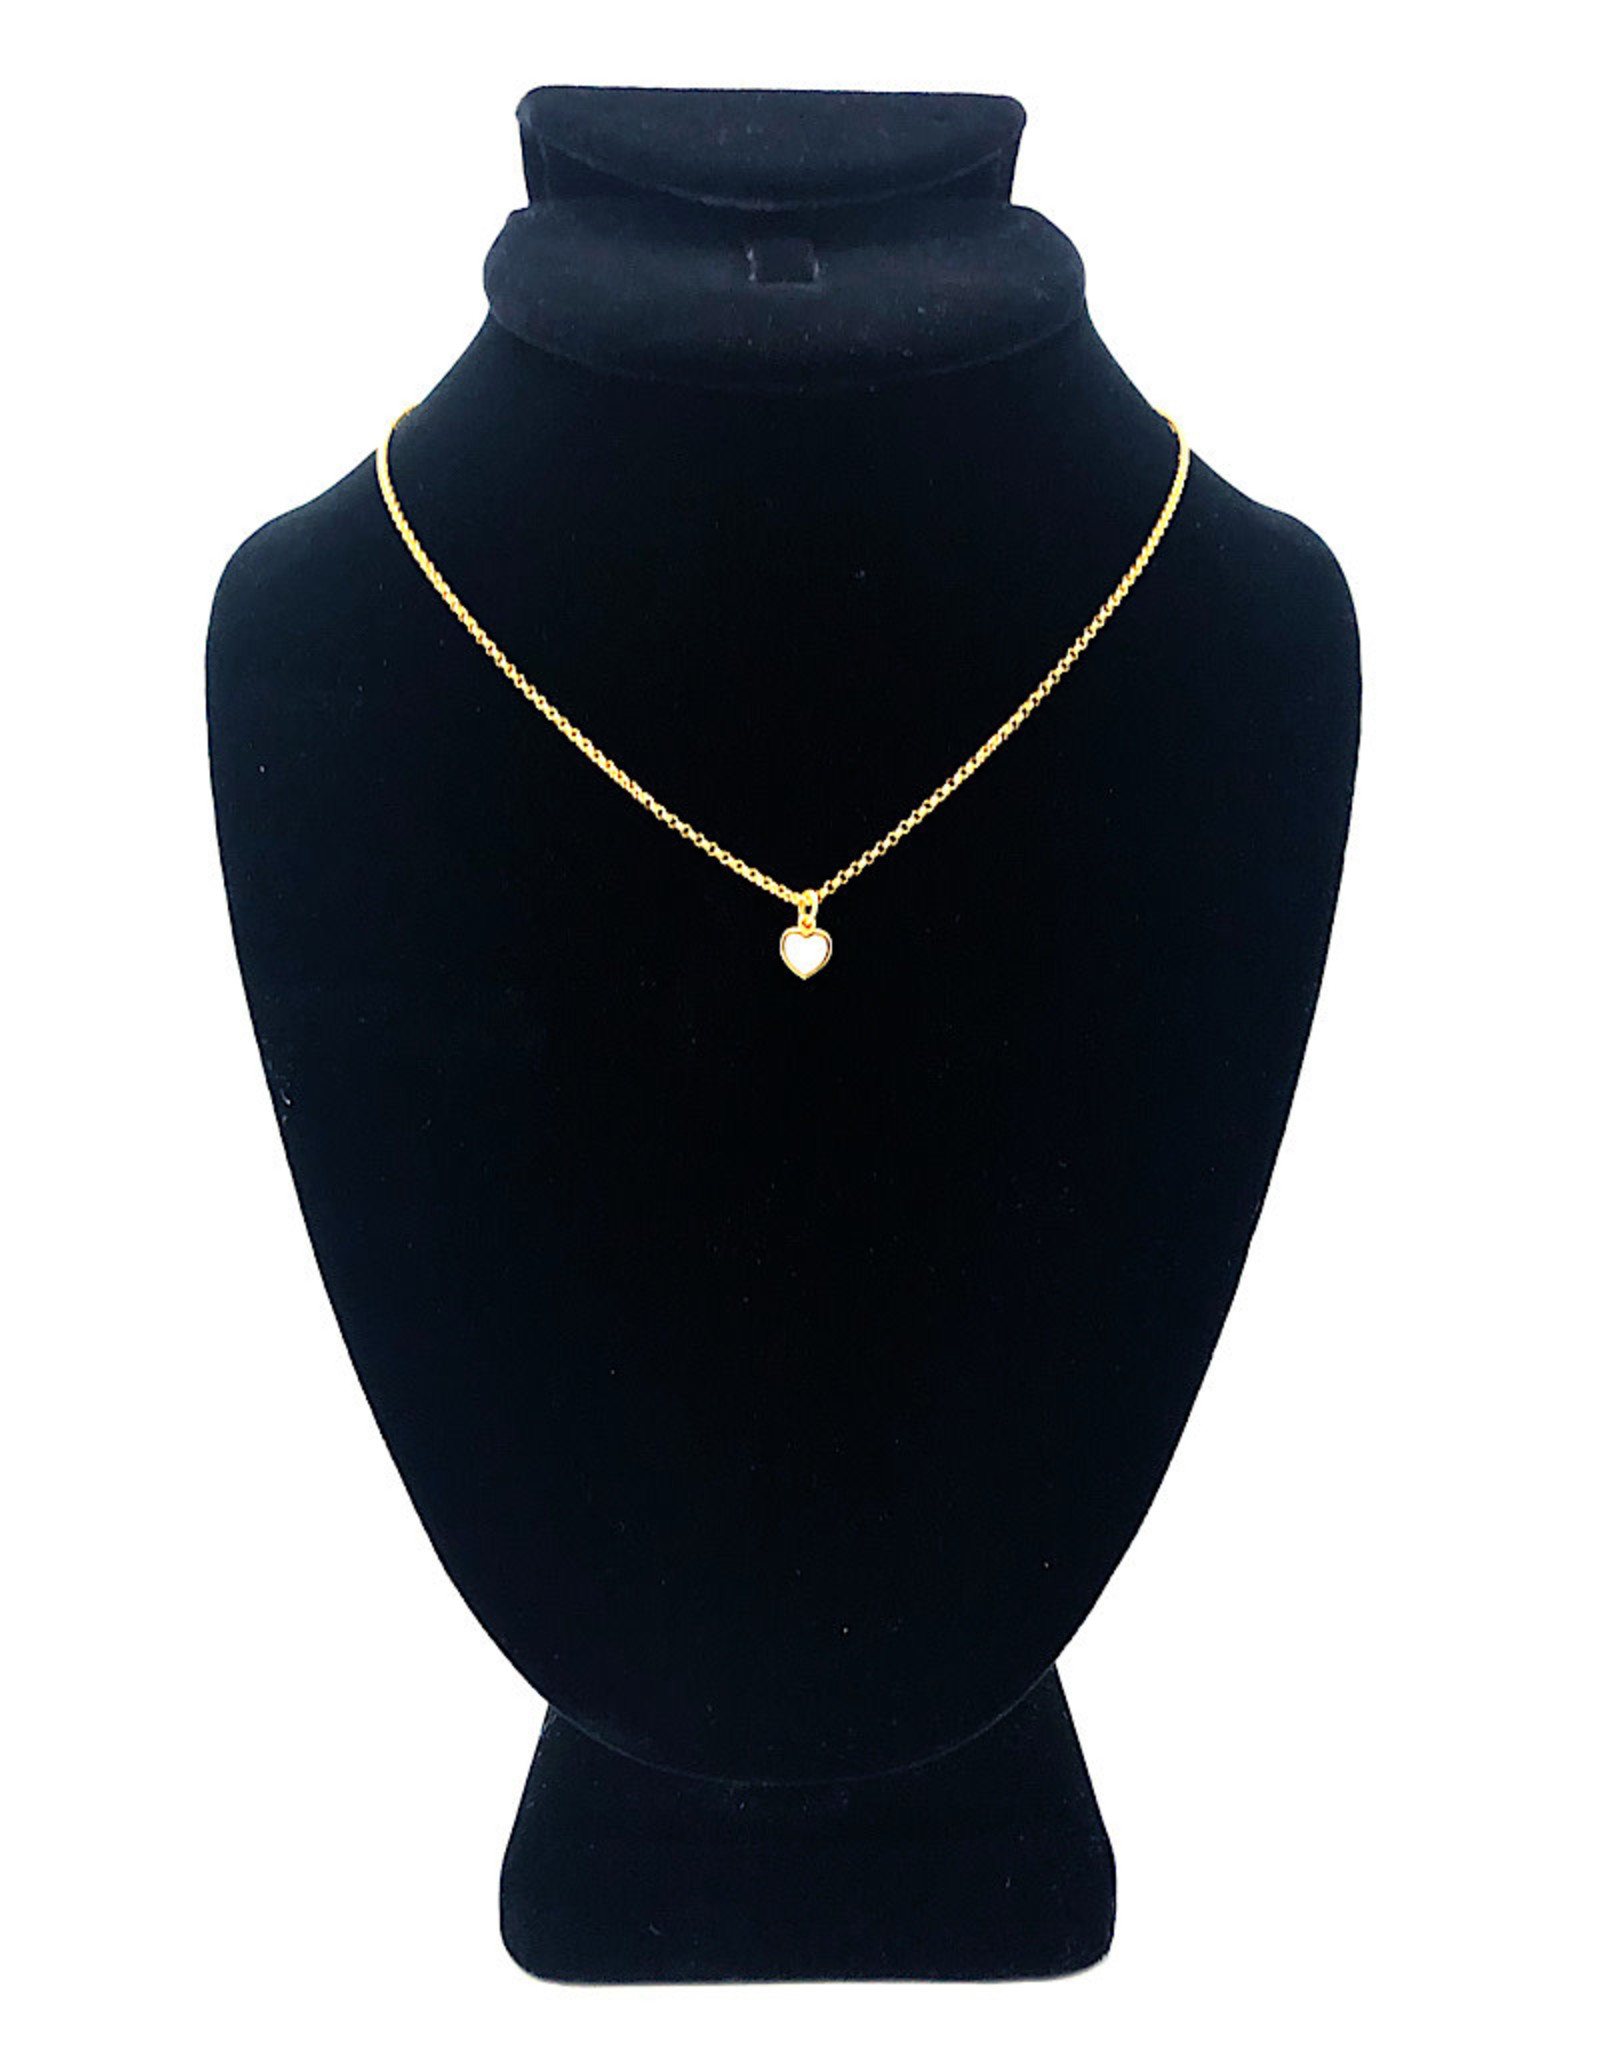 Beblue Gold Necklace Heart